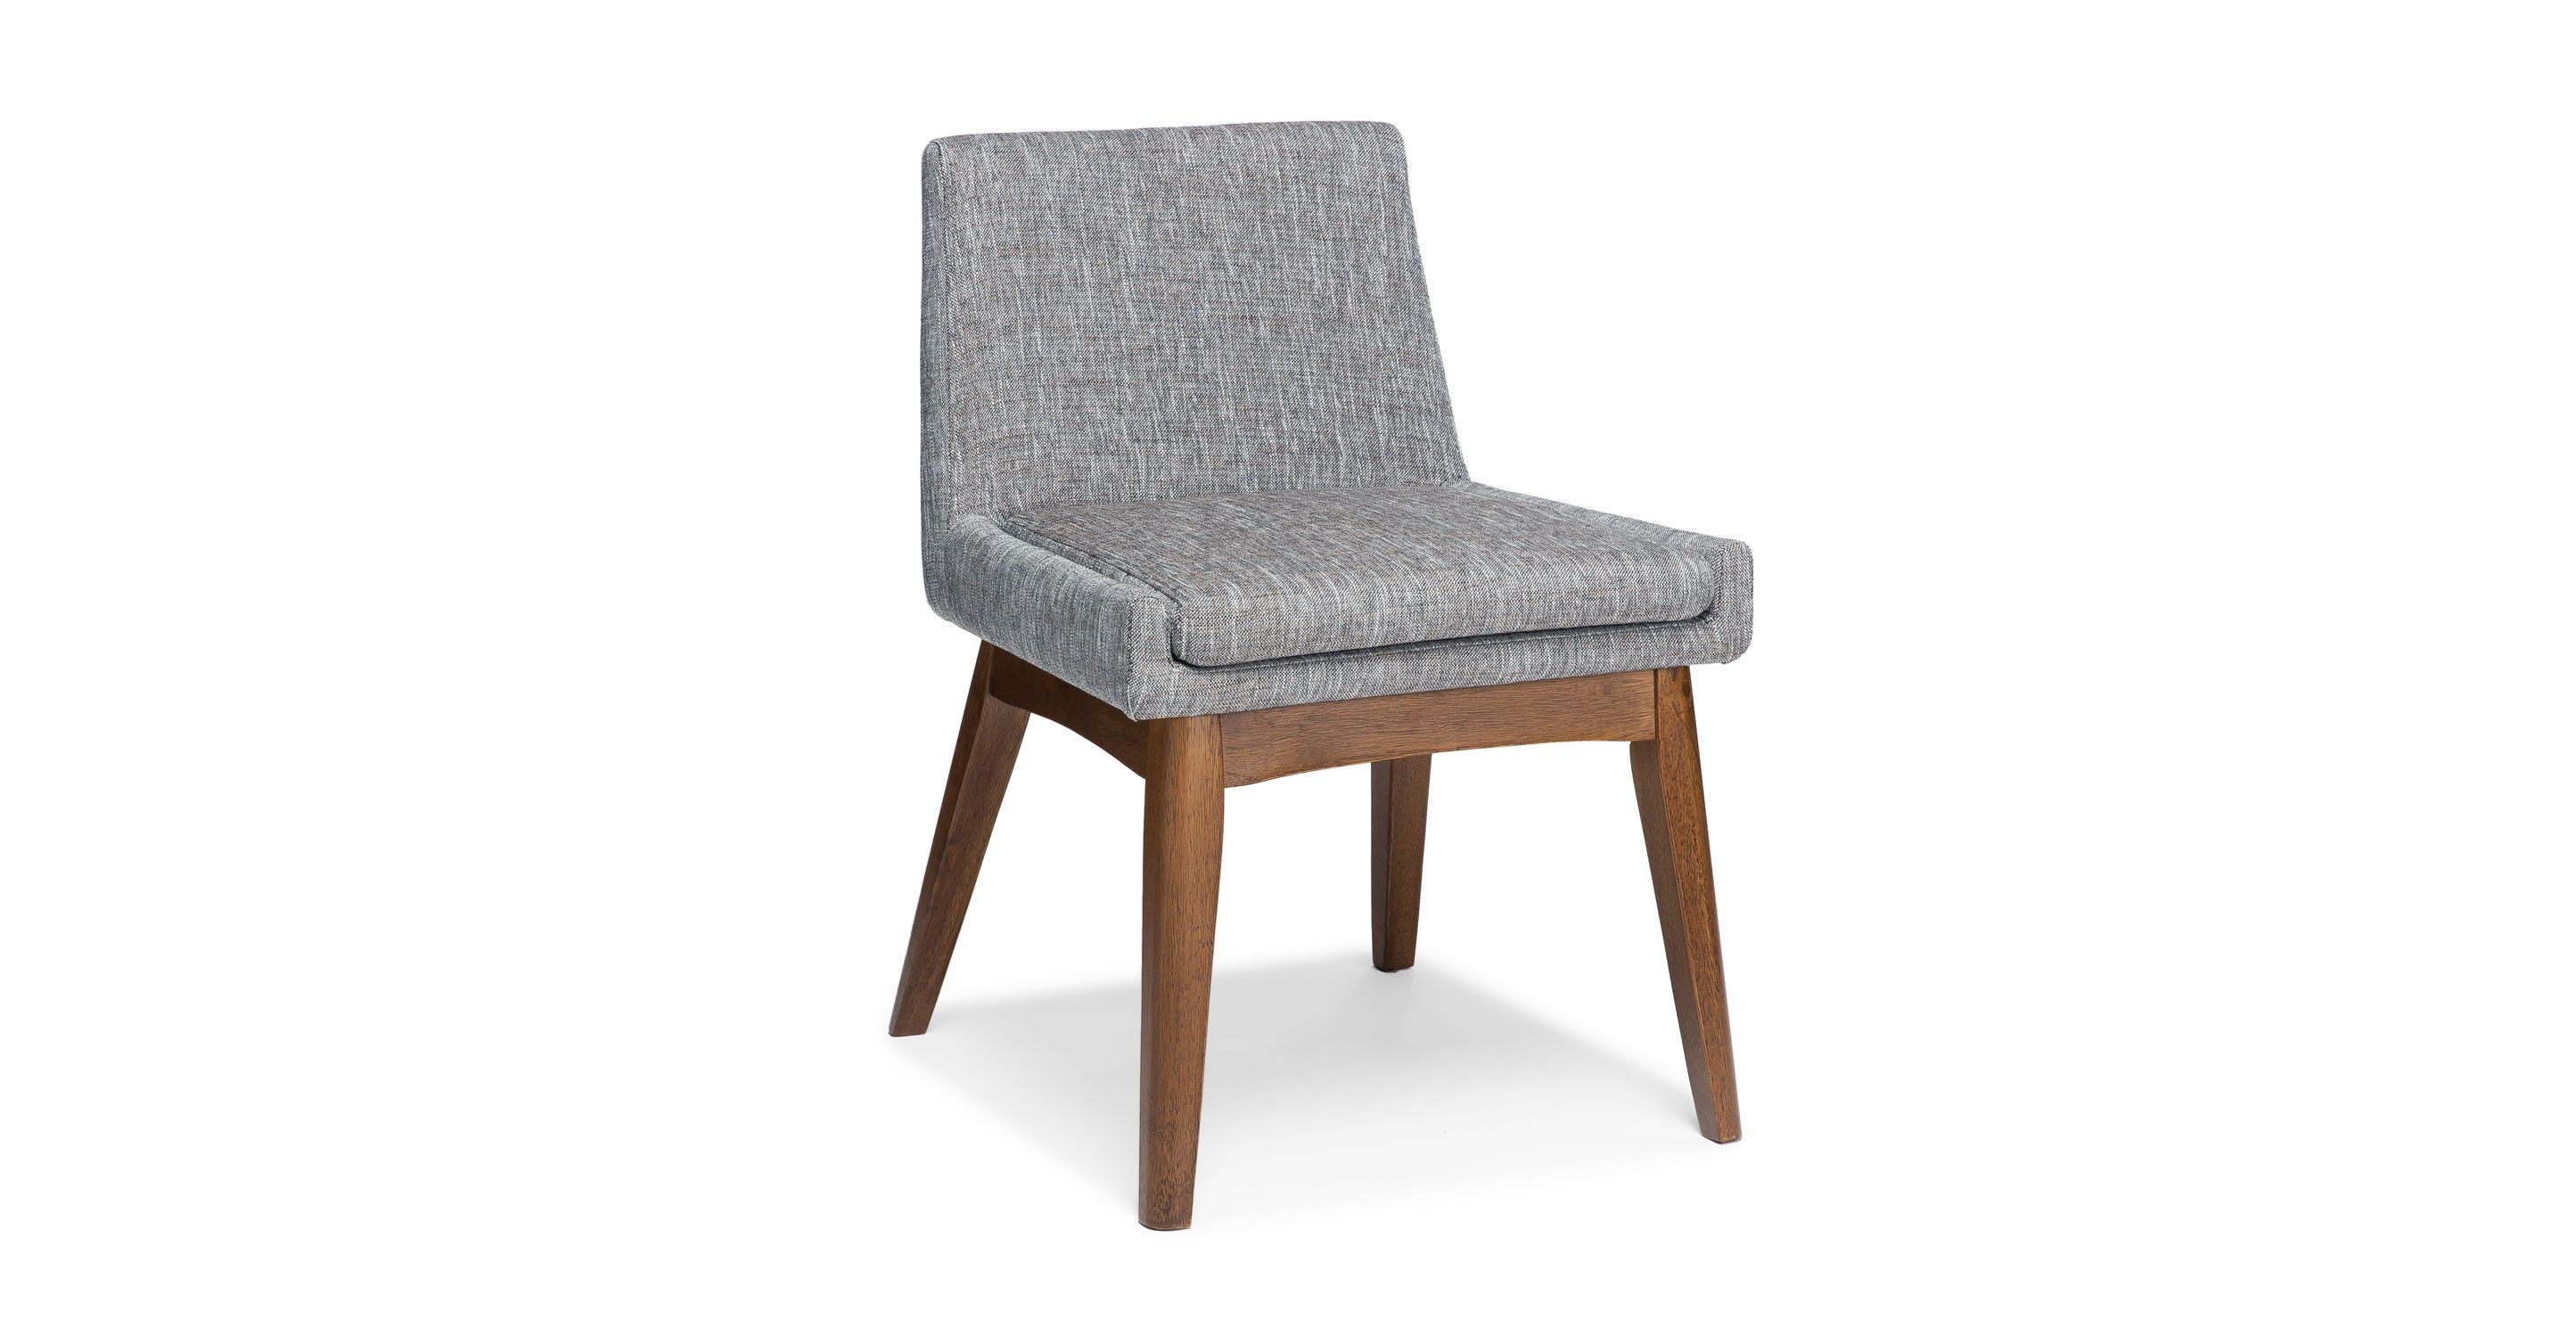 2x gray dining chair in brown wood upholstered article for Contemporary designer dining chairs